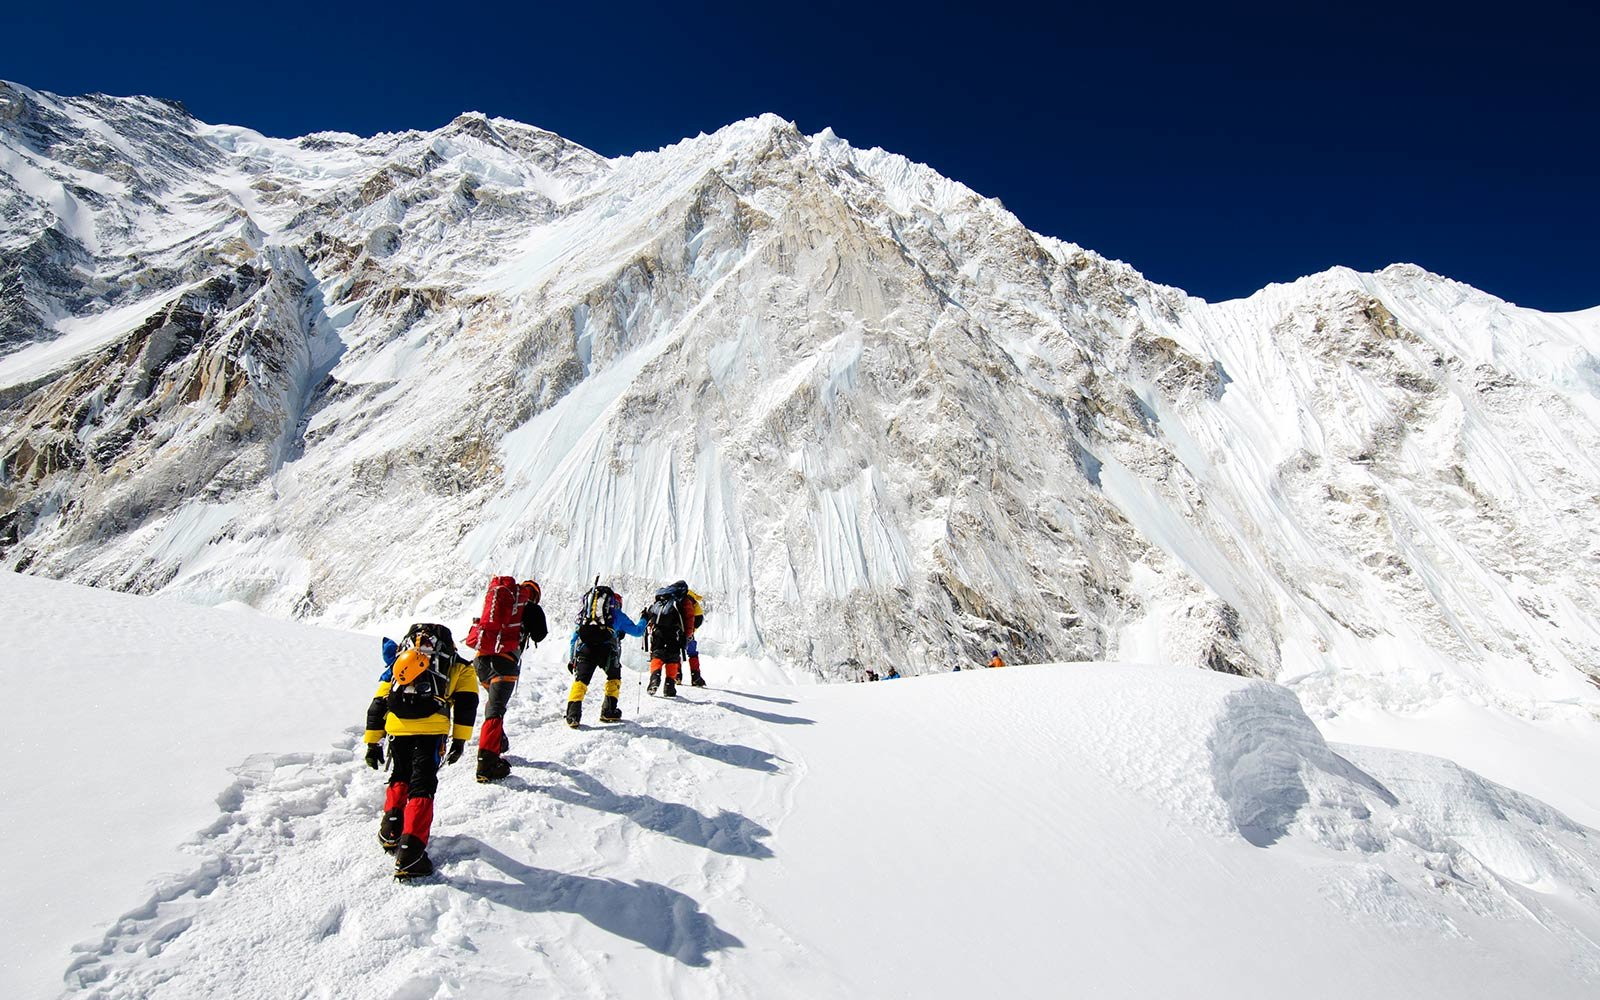 Sports Illustrated to produce first complete VR Mt. Everest climb